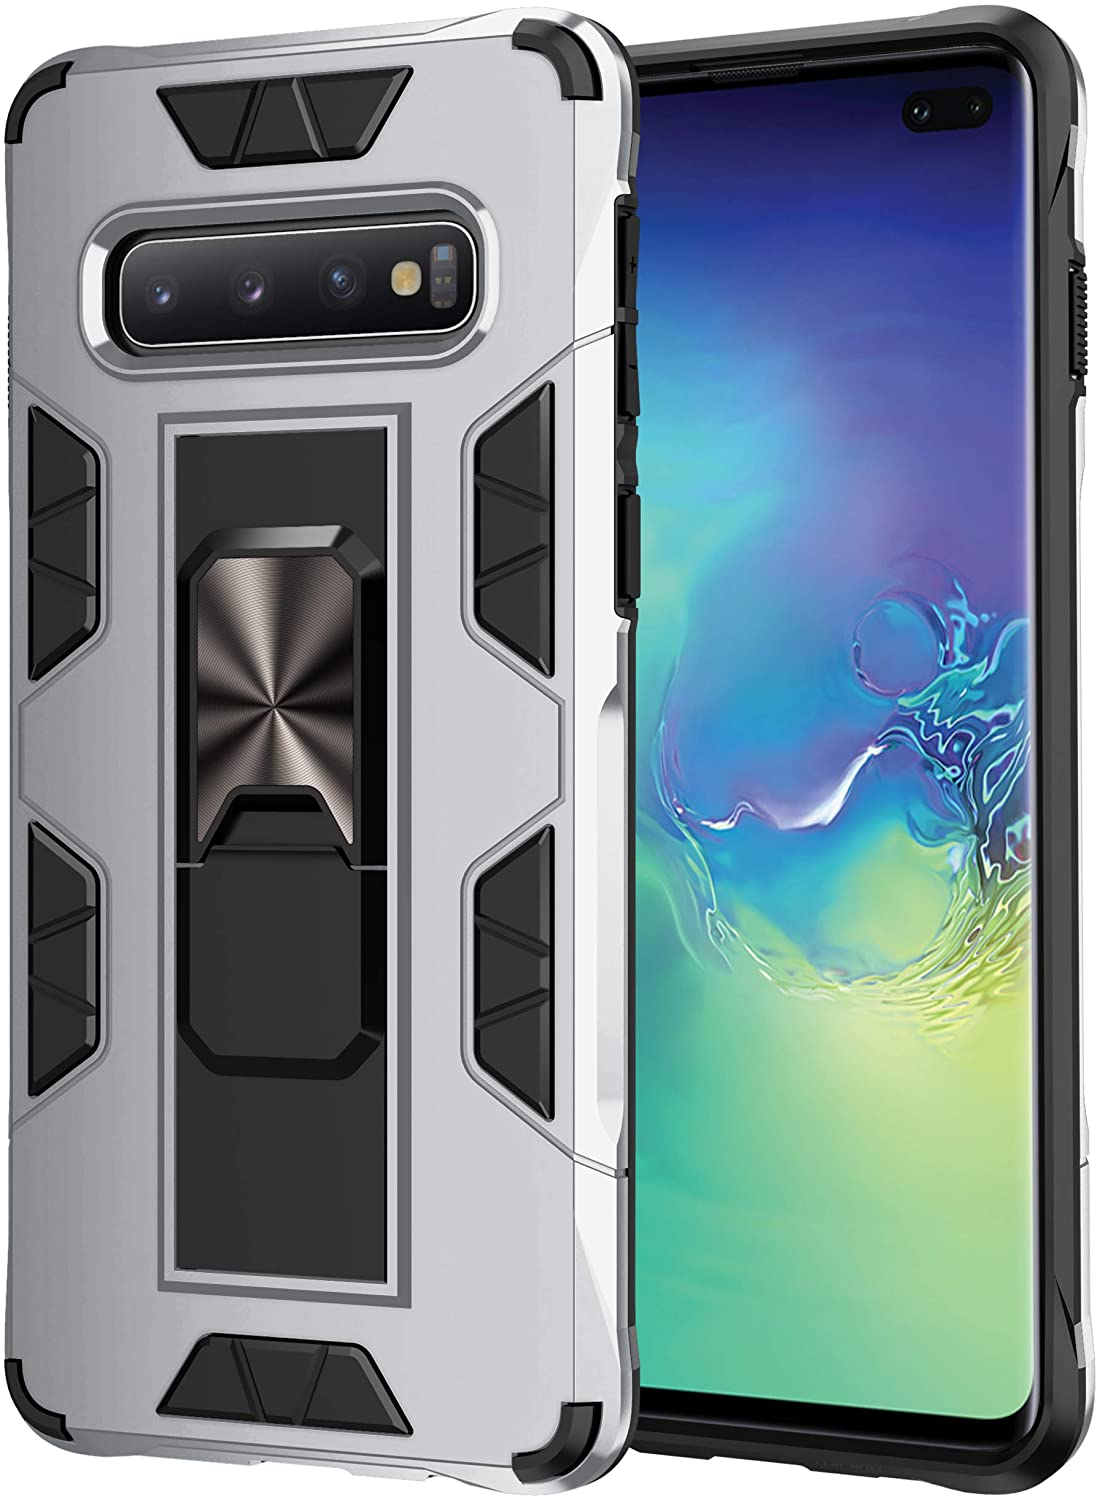 Korecase S10 Case Heavy Duty Full Body Protective Cases Upgrade Shockproof Built-in Bidirectional Kickstand Metal Panel Support Car Magnetic Holder for Galaxy S10 6.1